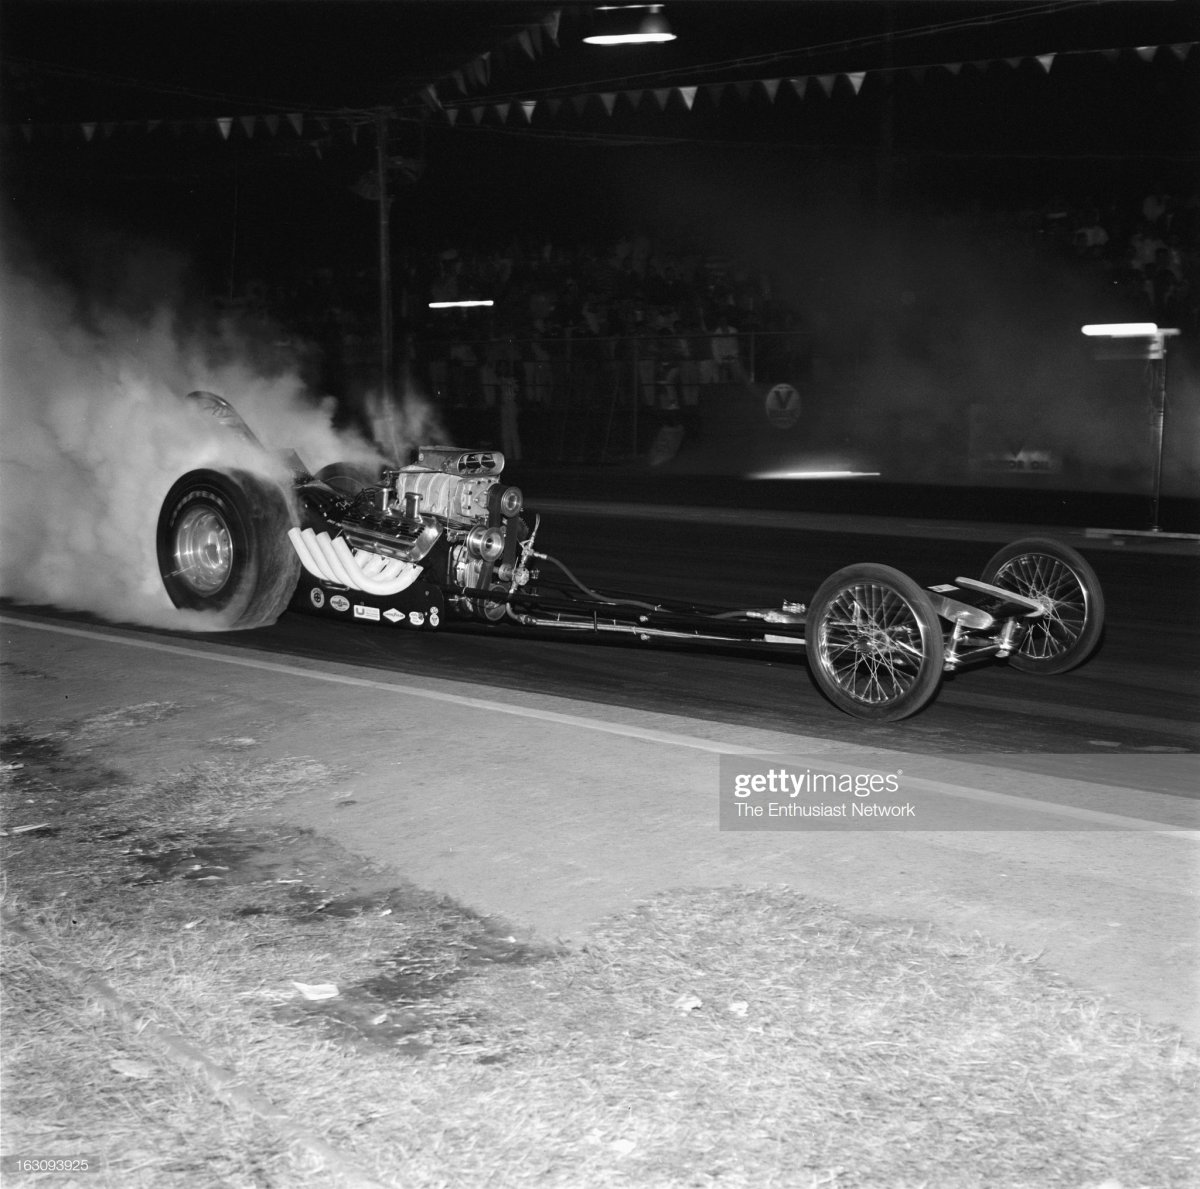 1965 AHRA Drag Races - Lions Drag Strip. T.jpg